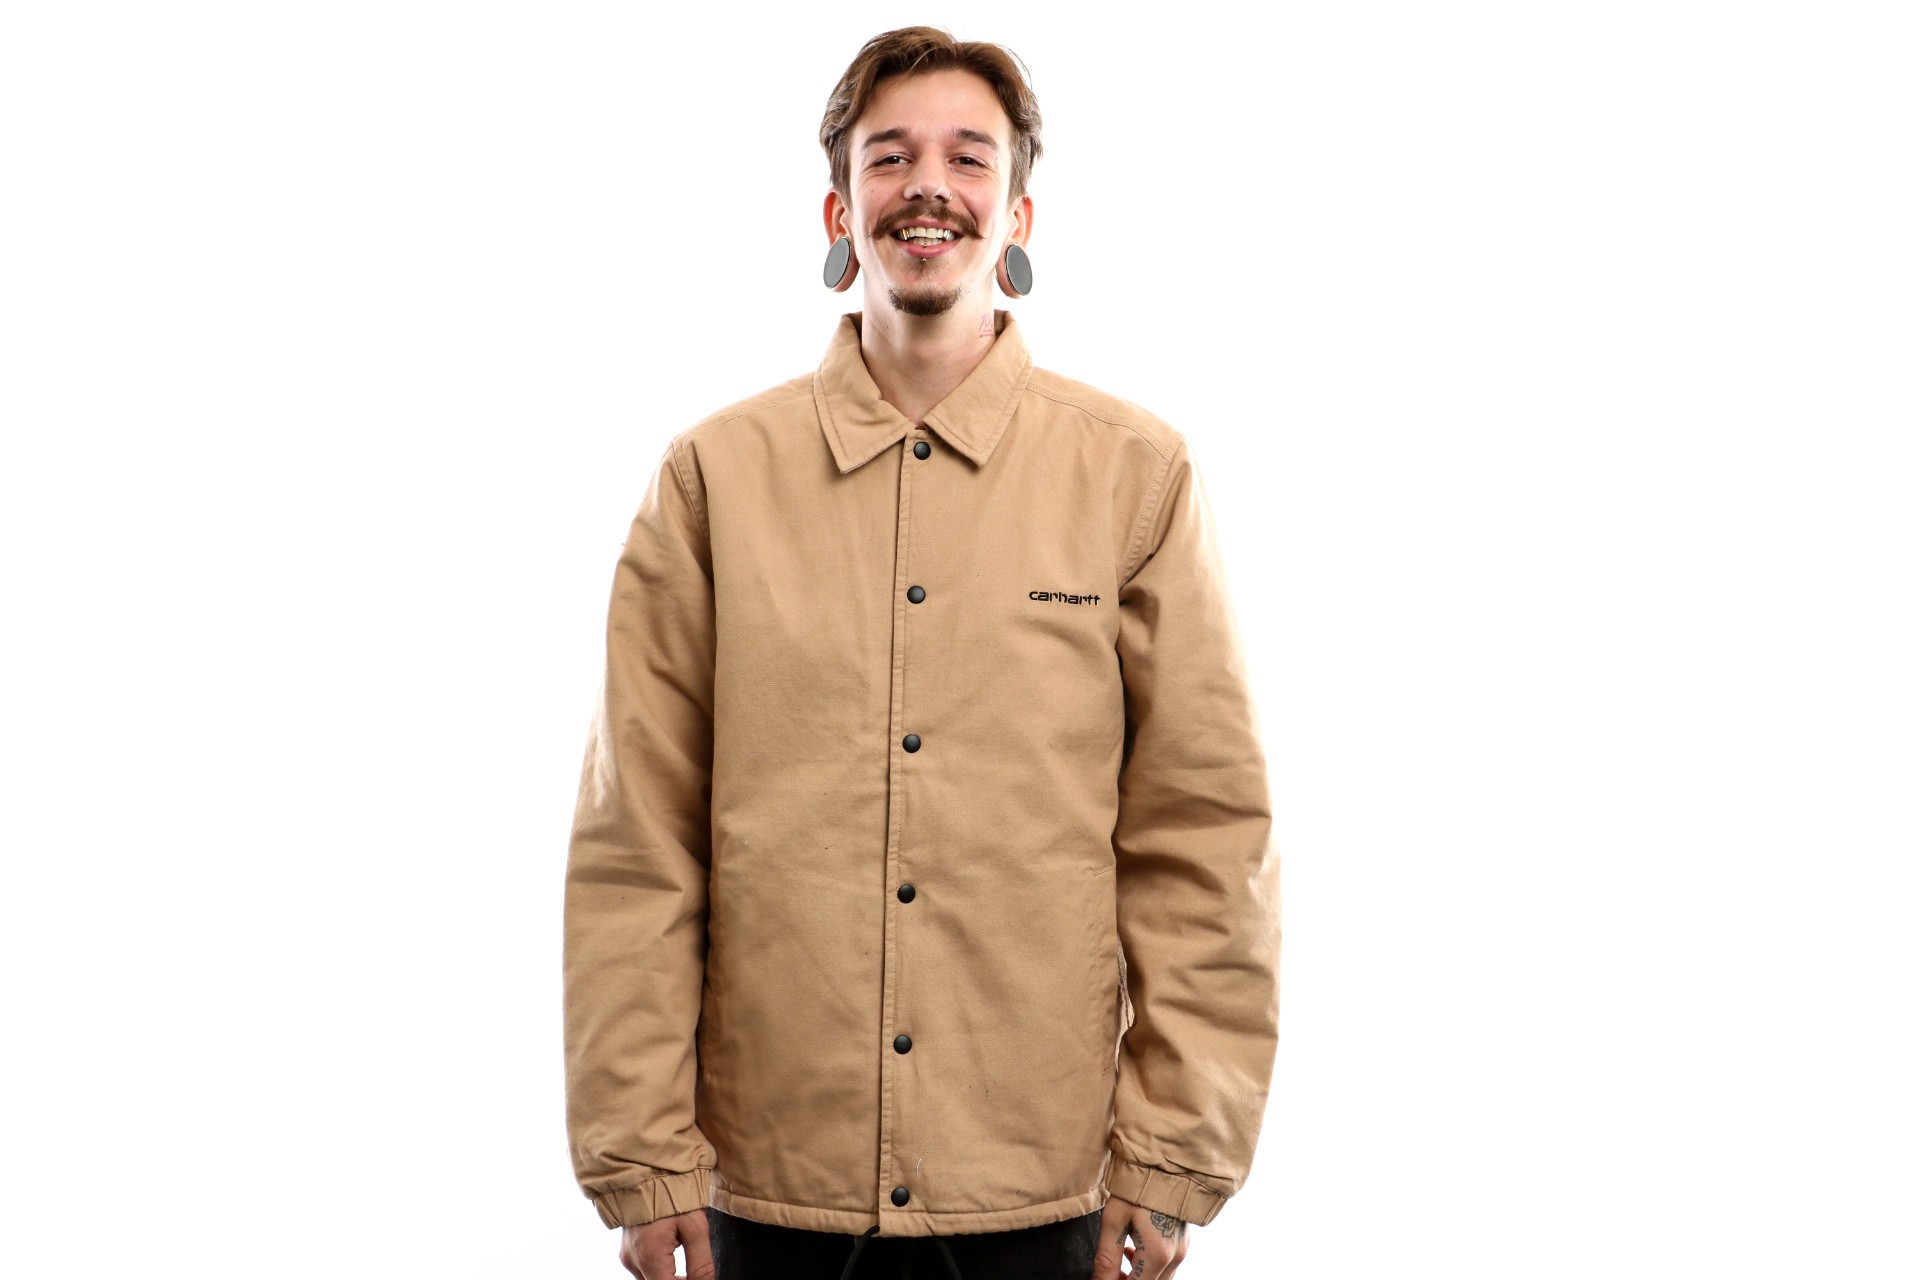 Foto van Carhartt Wip Canvas Coach Jacket I026723 Jacket Dusty Hamilton Brown / Black